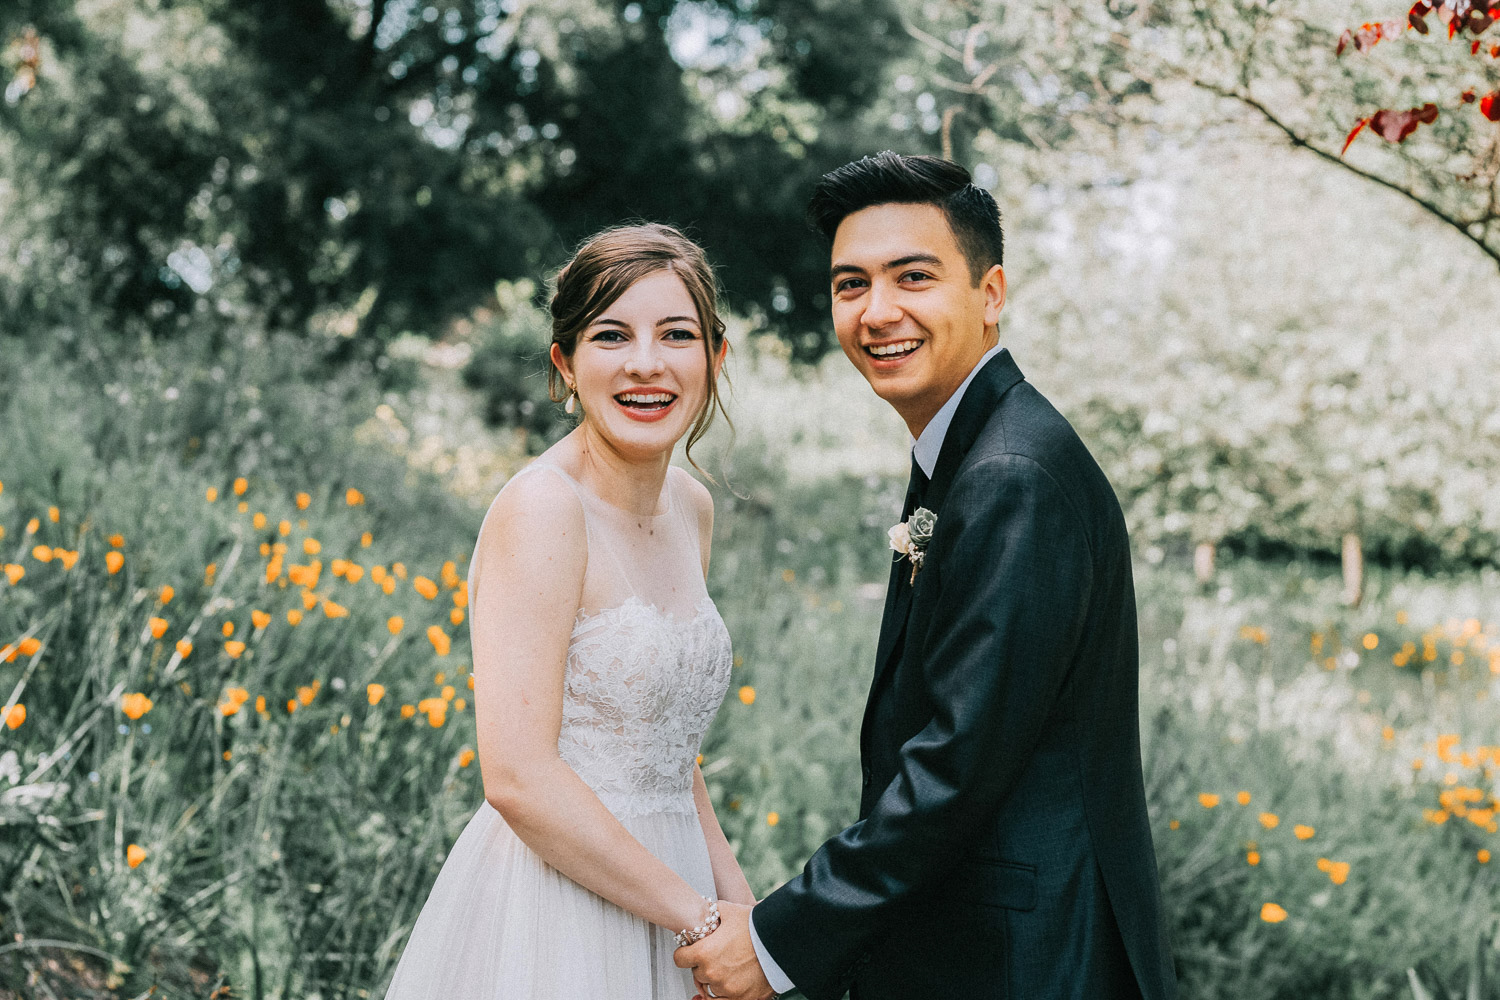 Image of bride and groom both smile